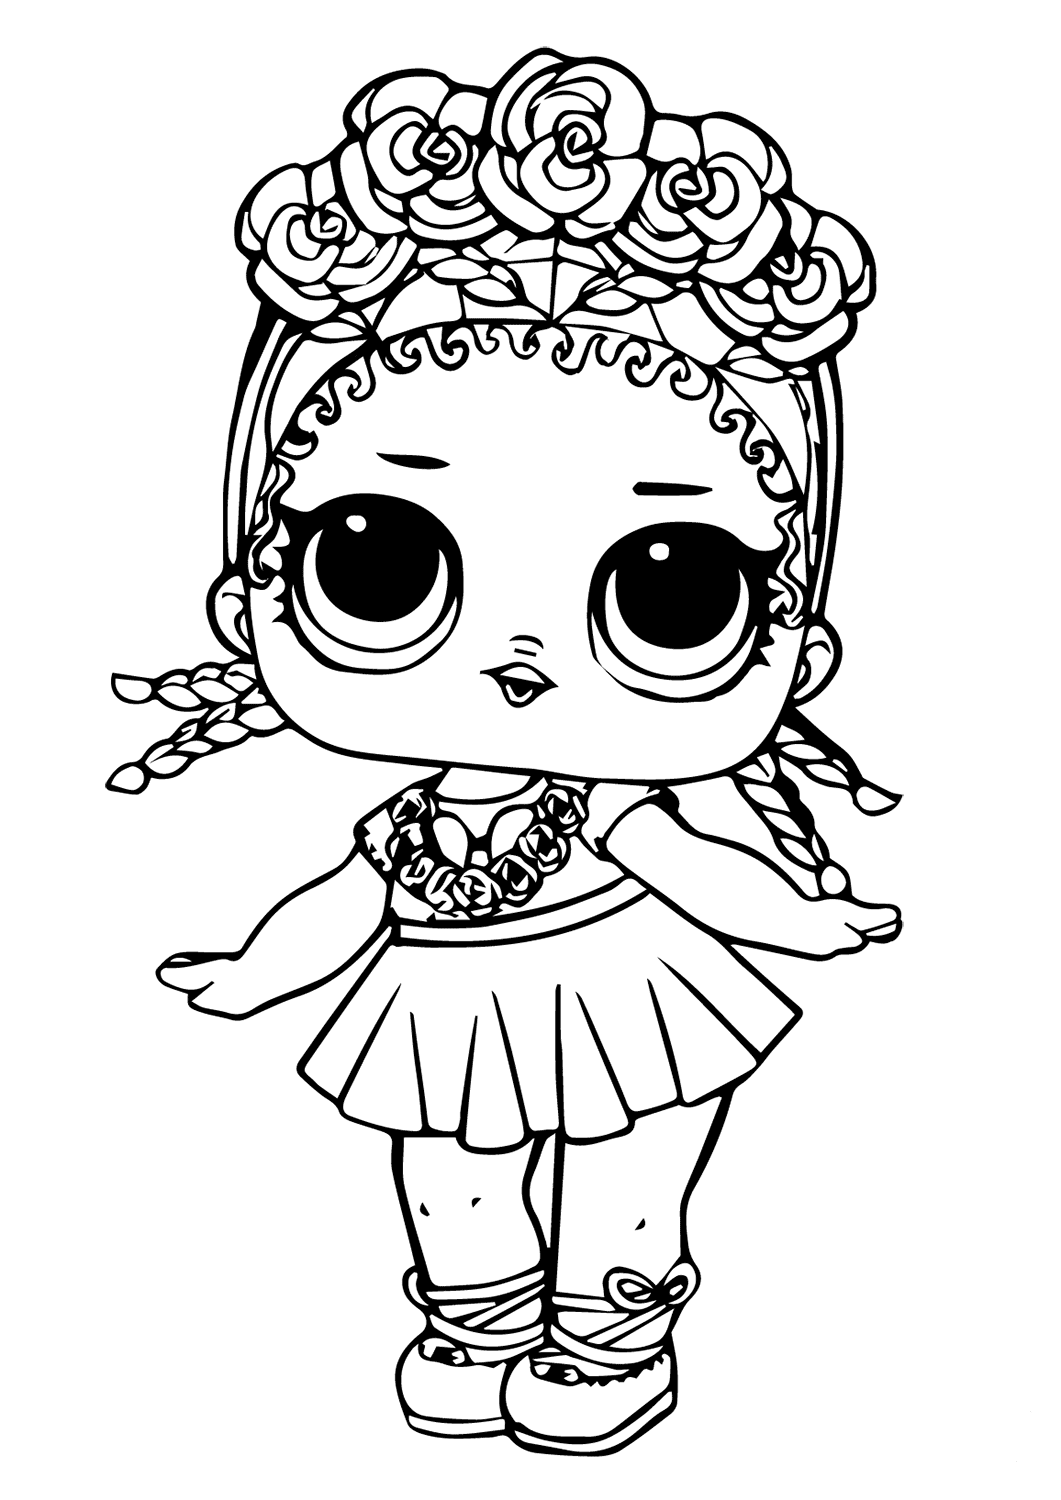 Lol Surprise Doll Coloring Sheets Coconut Q T Unicorn Coloring Pages Cartoon Coloring Pages Cute Coloring Pages